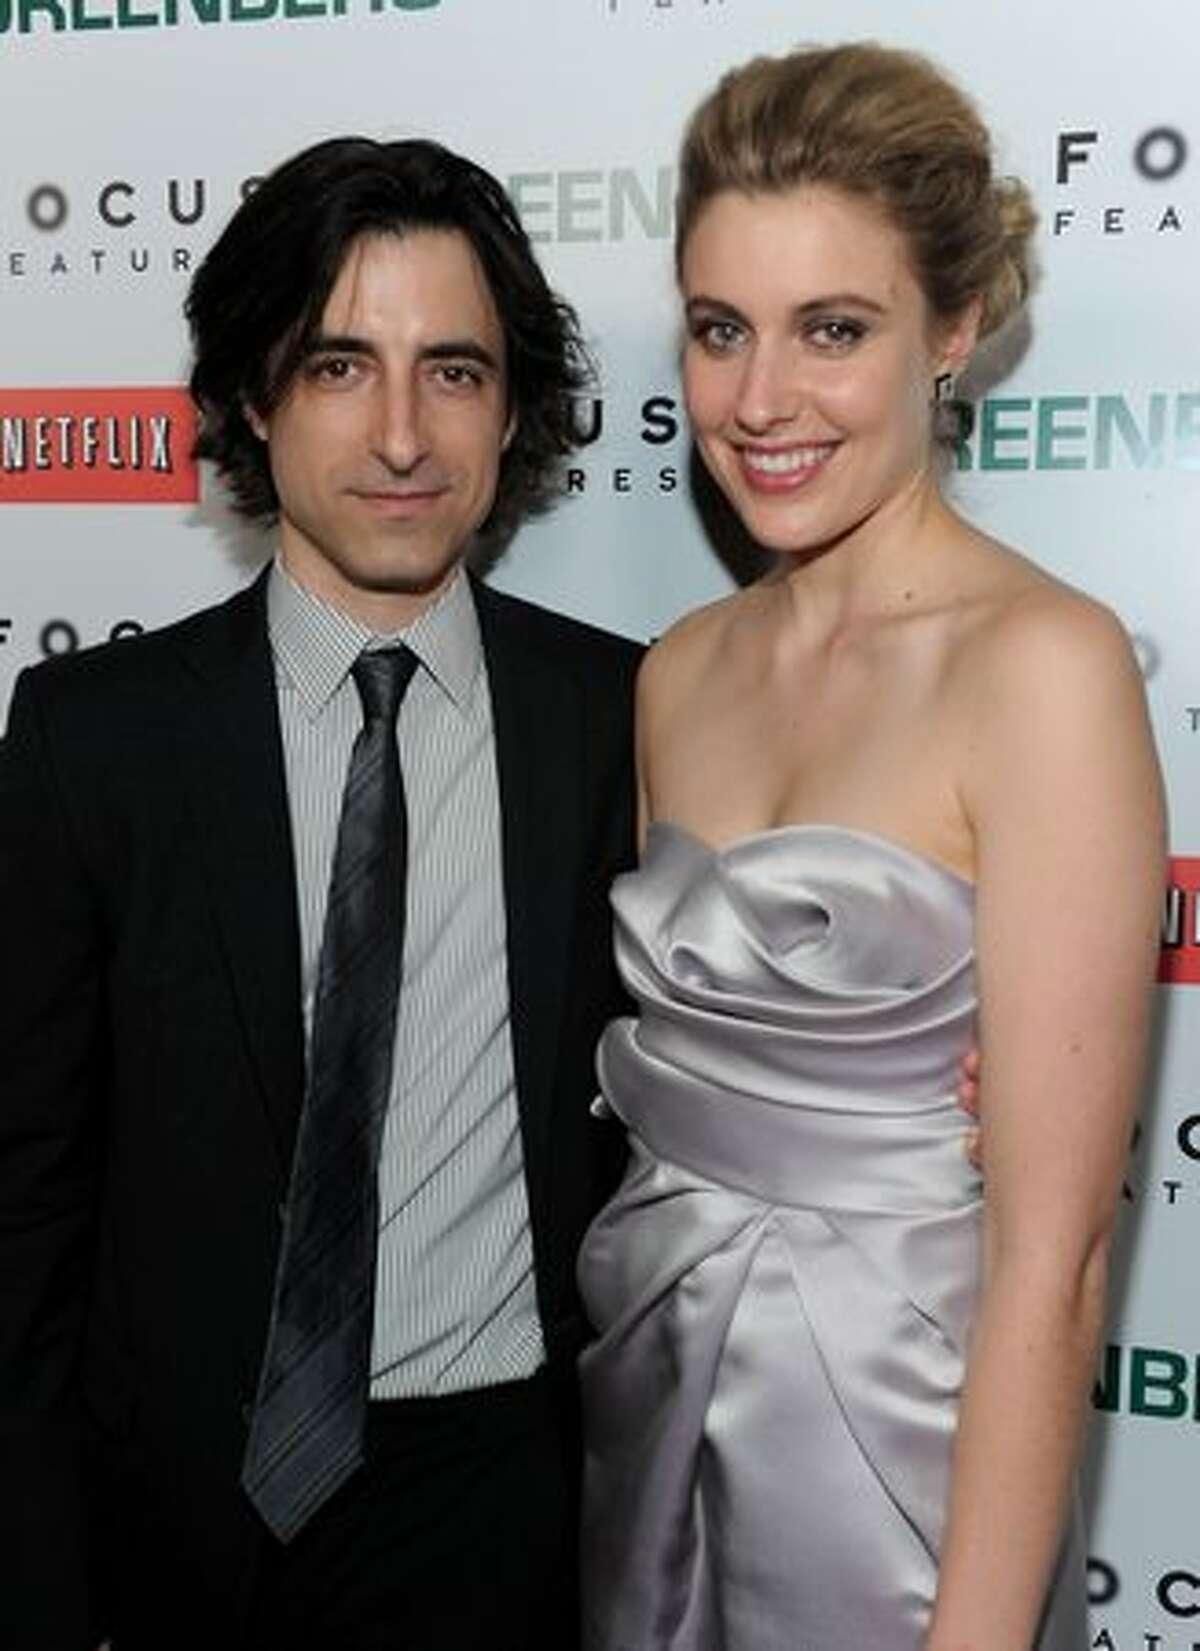 Director Noah Baumbach and actress Greta Gerwig arrive on the red carpet at the